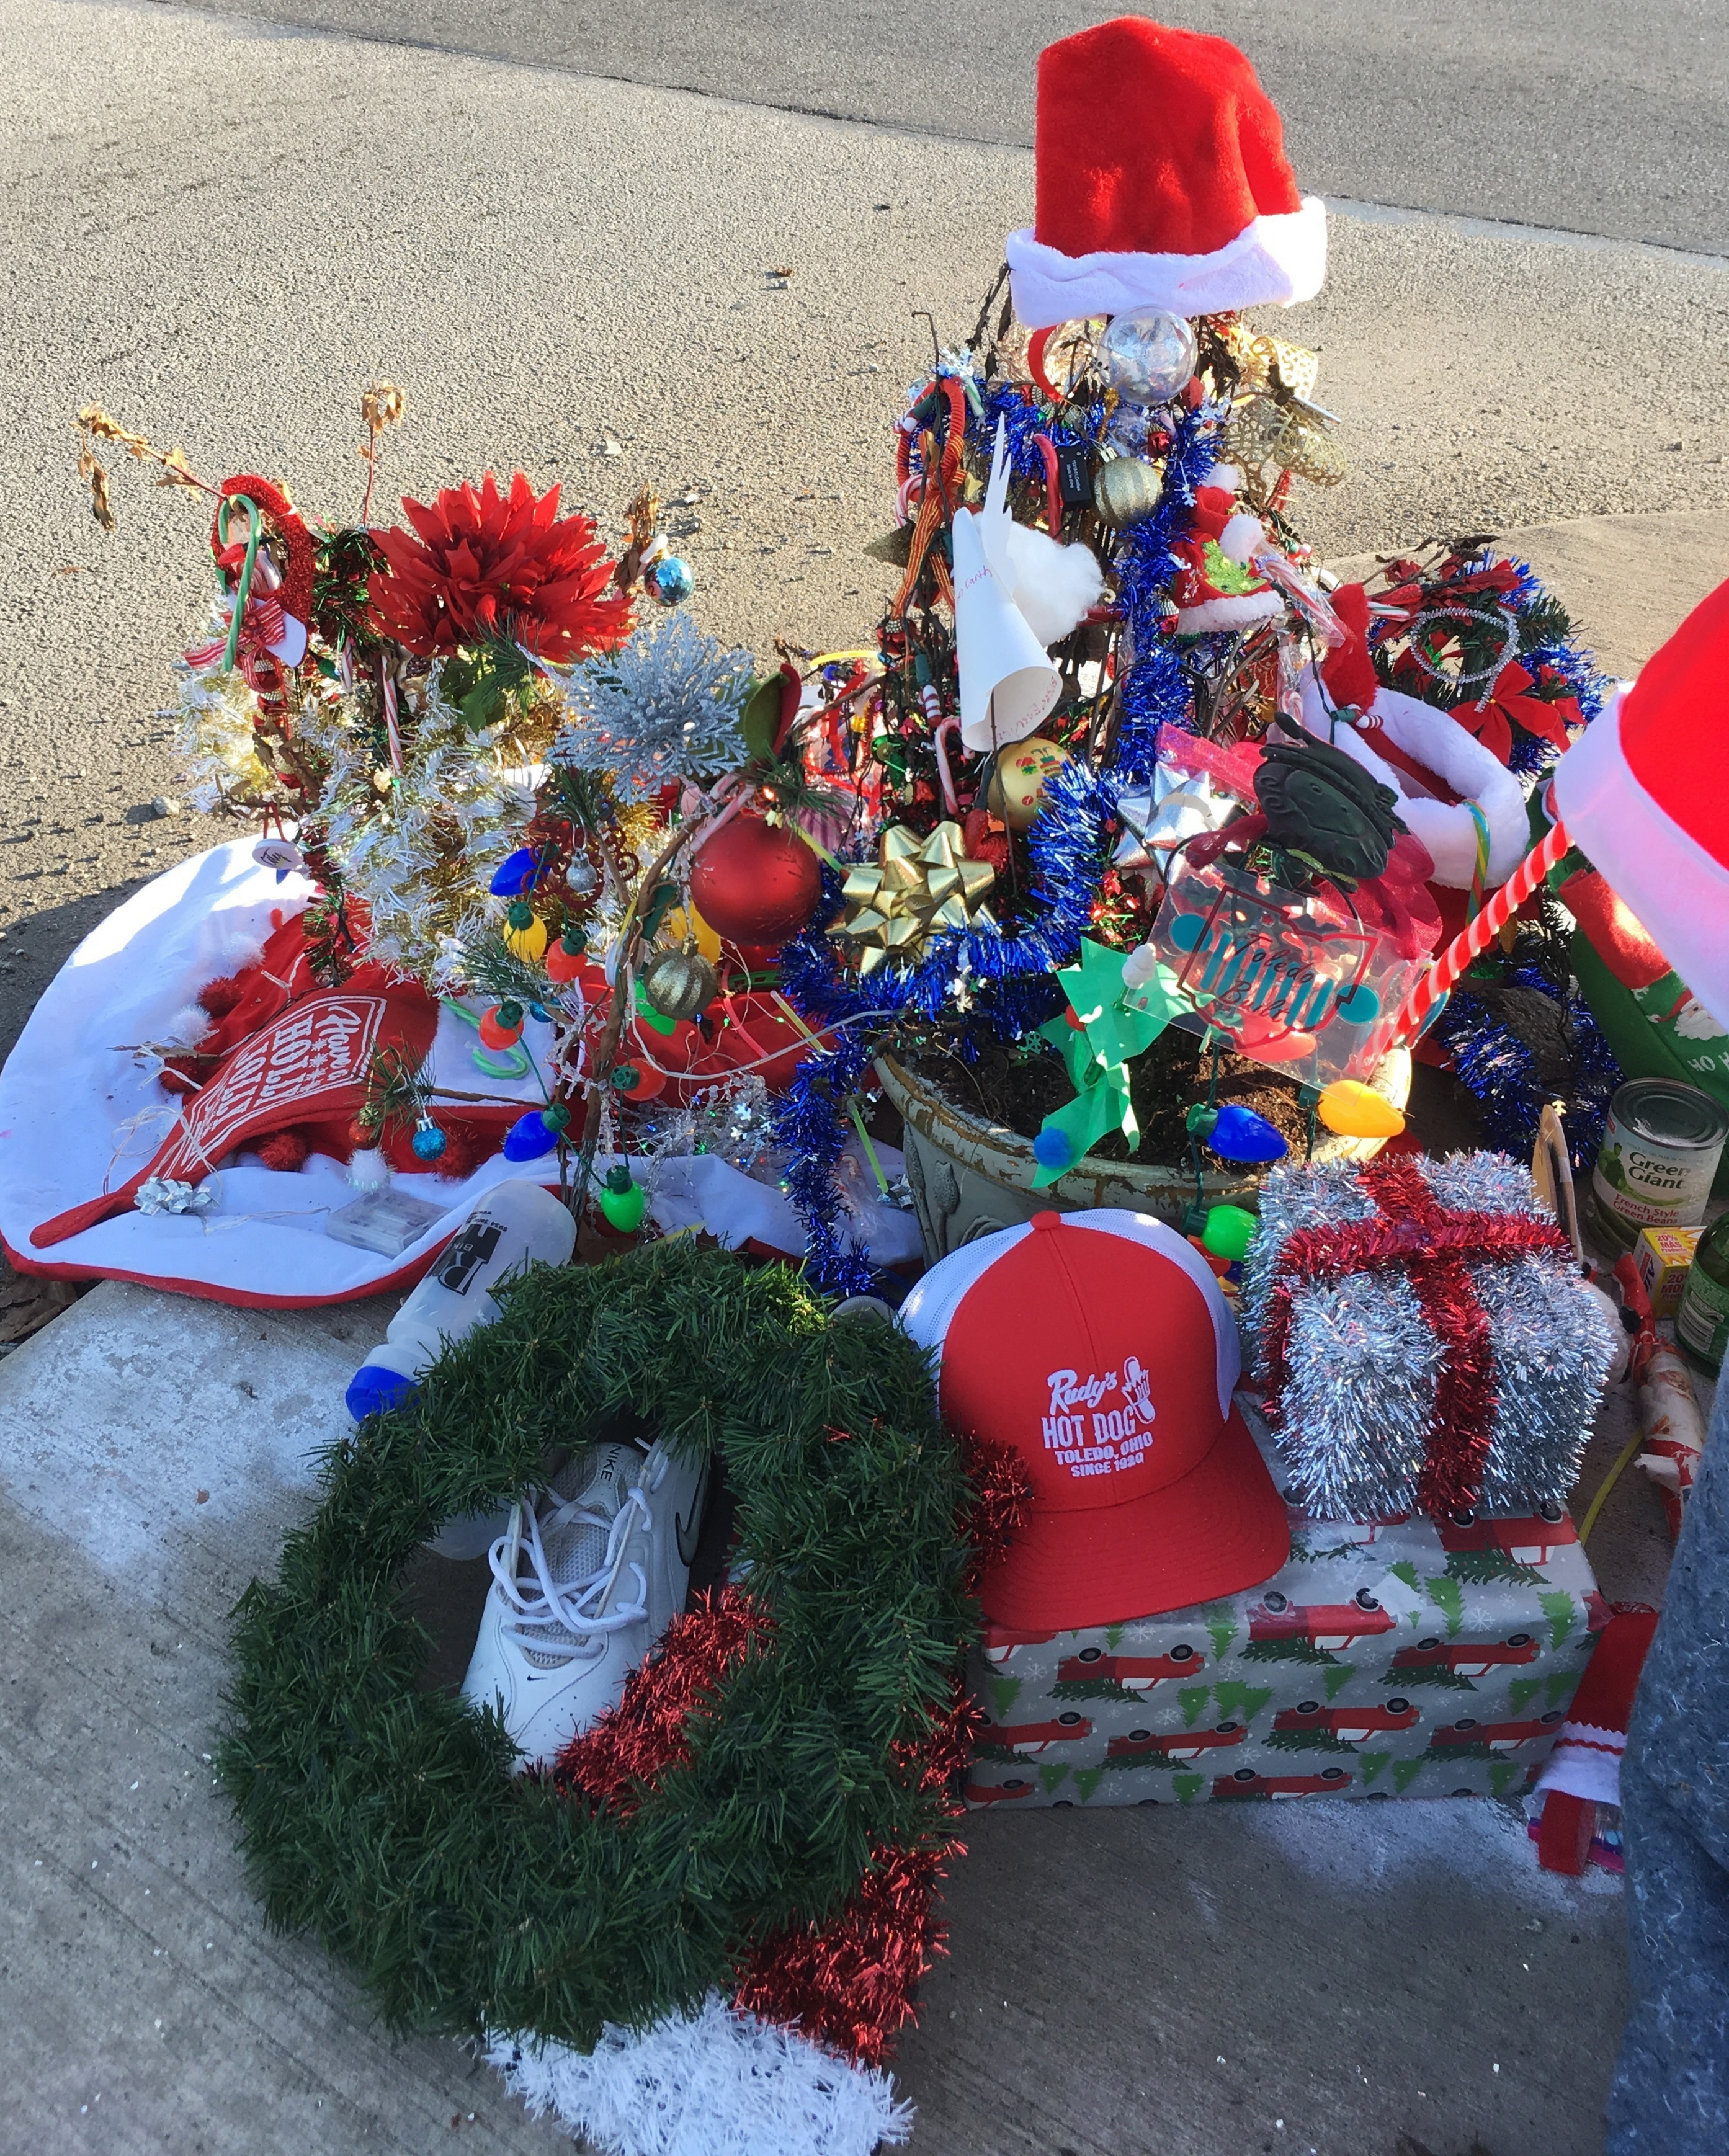 Christmas decorations and donations surround what is now known as the Christmas weed in Toledo, Ohio